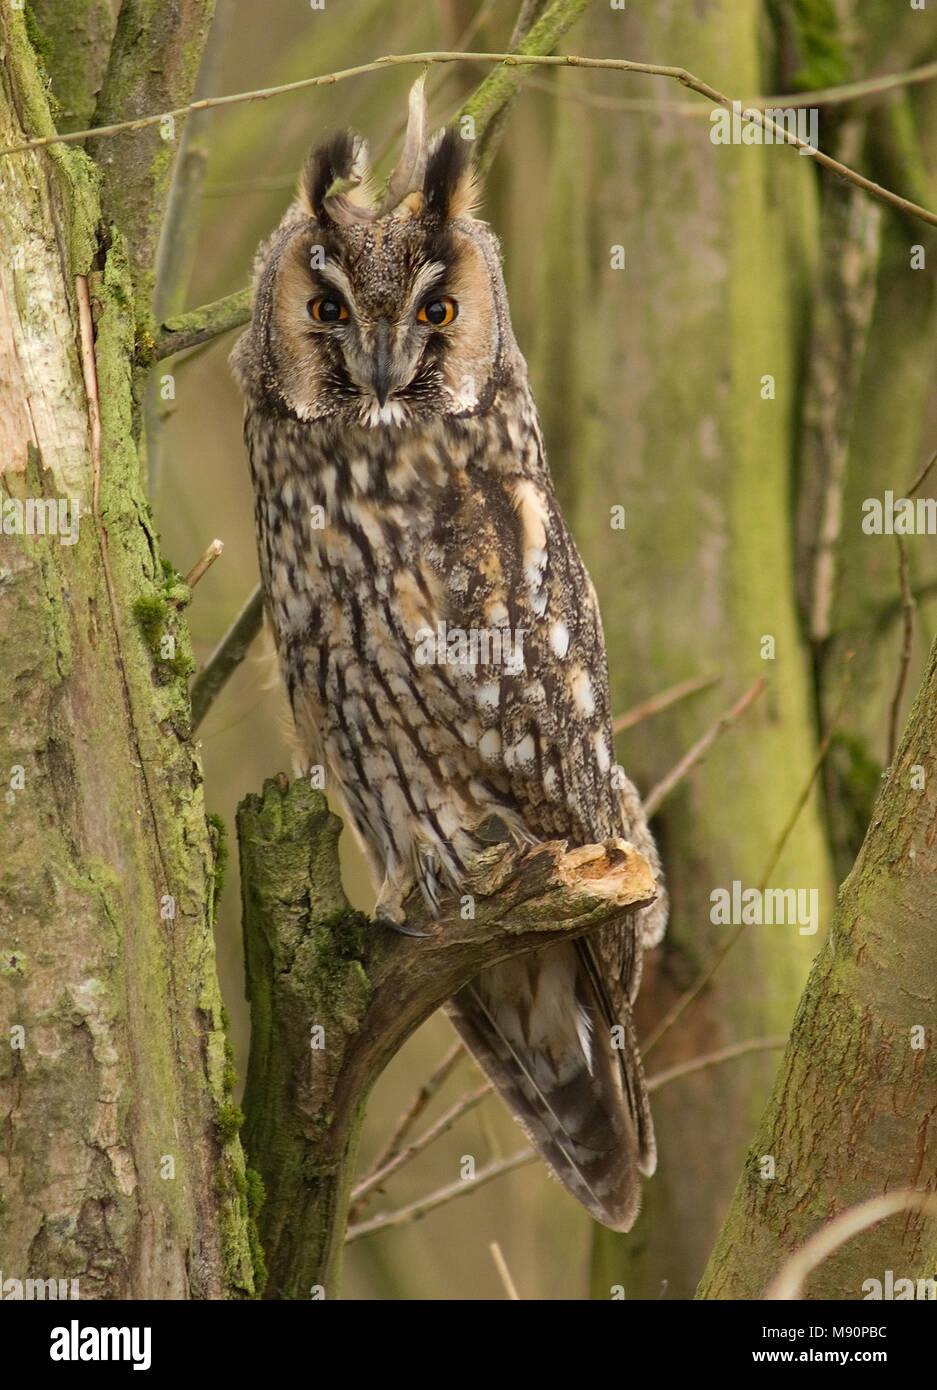 Long-eared Owl; Ransuil; Asio otus - Stock Image